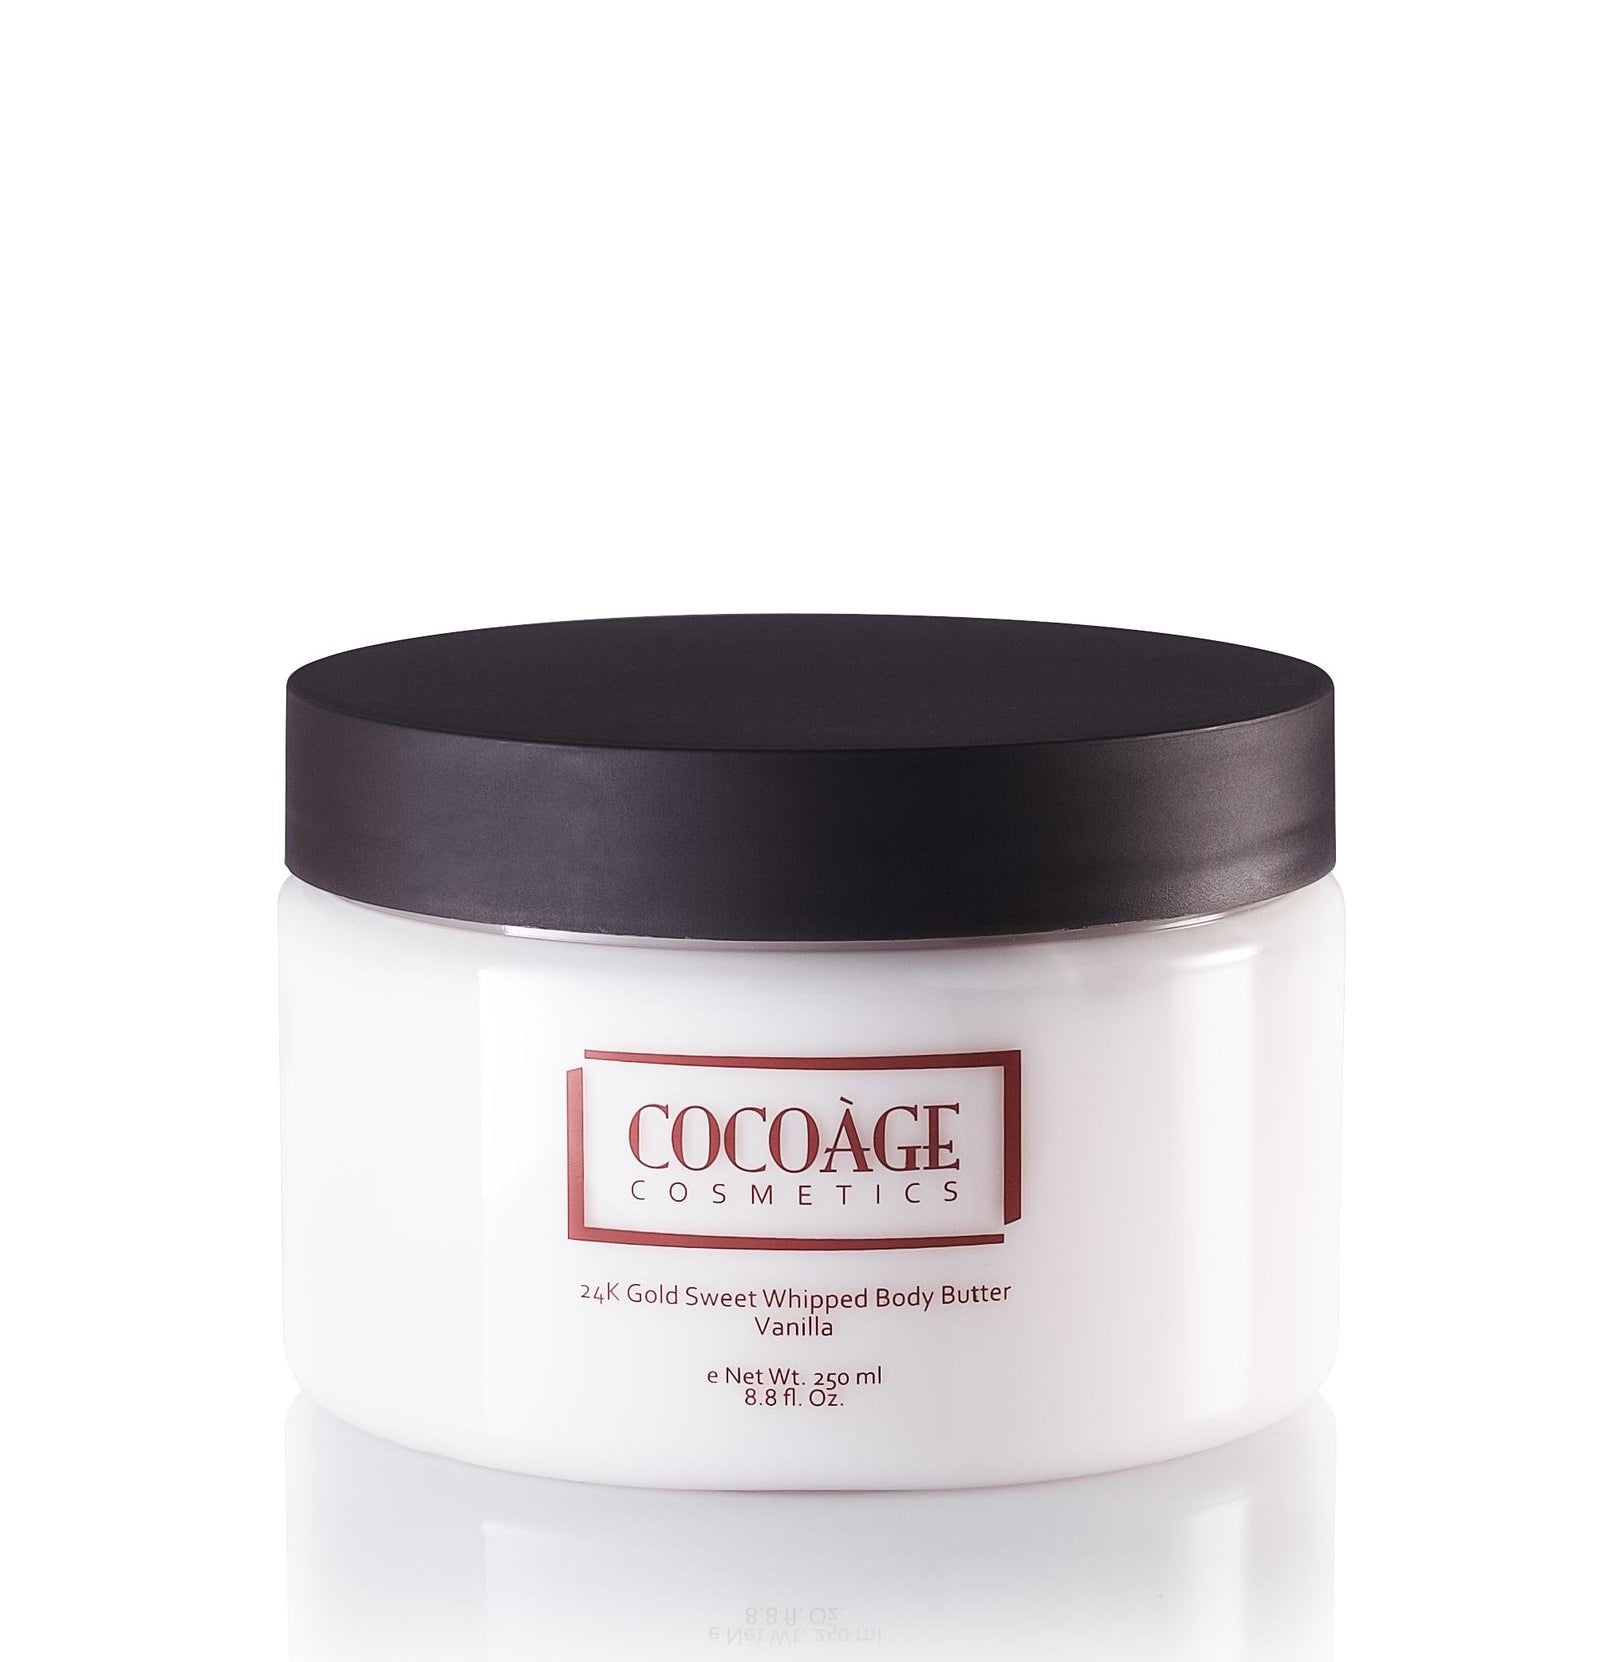 Cocoàge – 24K Gold Sweet Whipped Body Butter – Vanilla